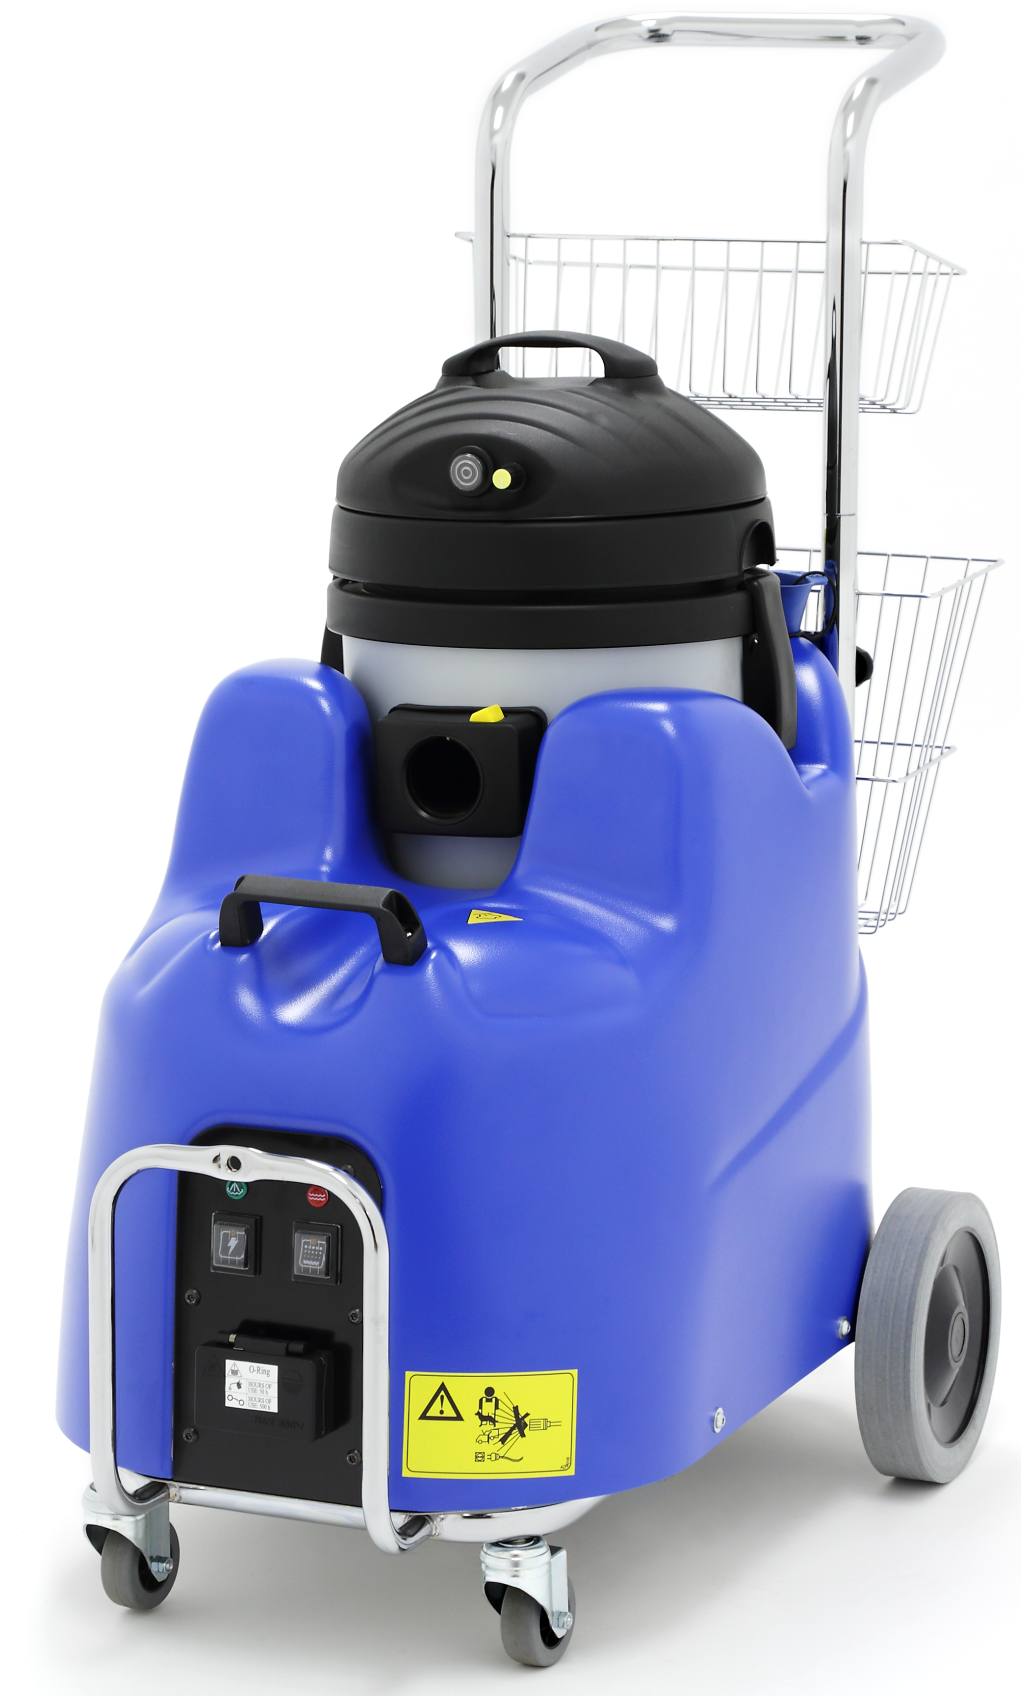 Vapor Steam Cleaner From Daimer Released To Dental Offices